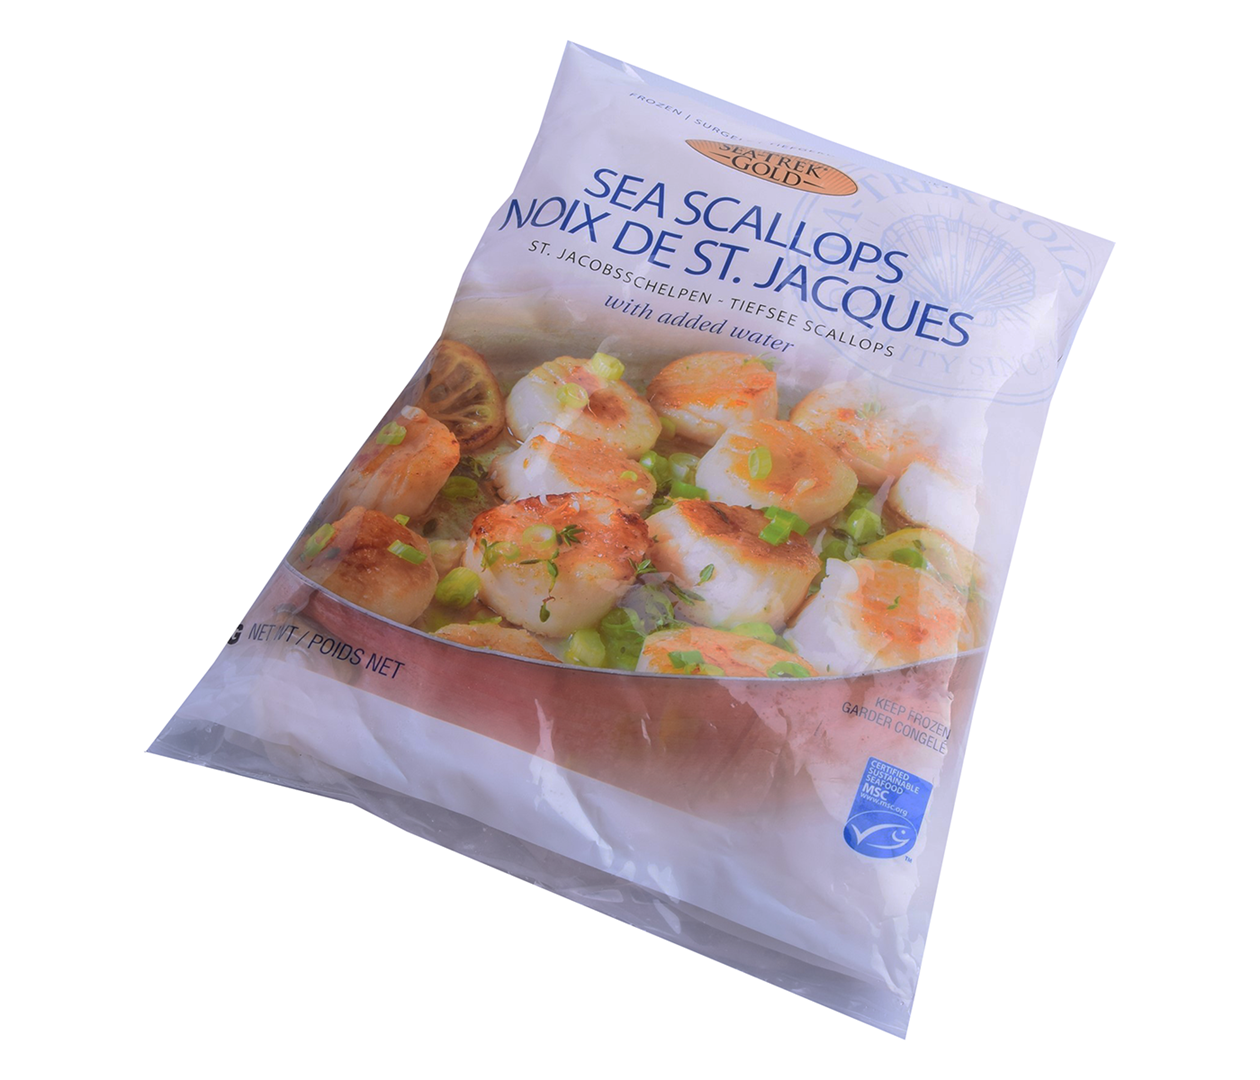 Productafbeelding SCALLOPS CLEARWATER MSC 10/20 BAG 1KG.